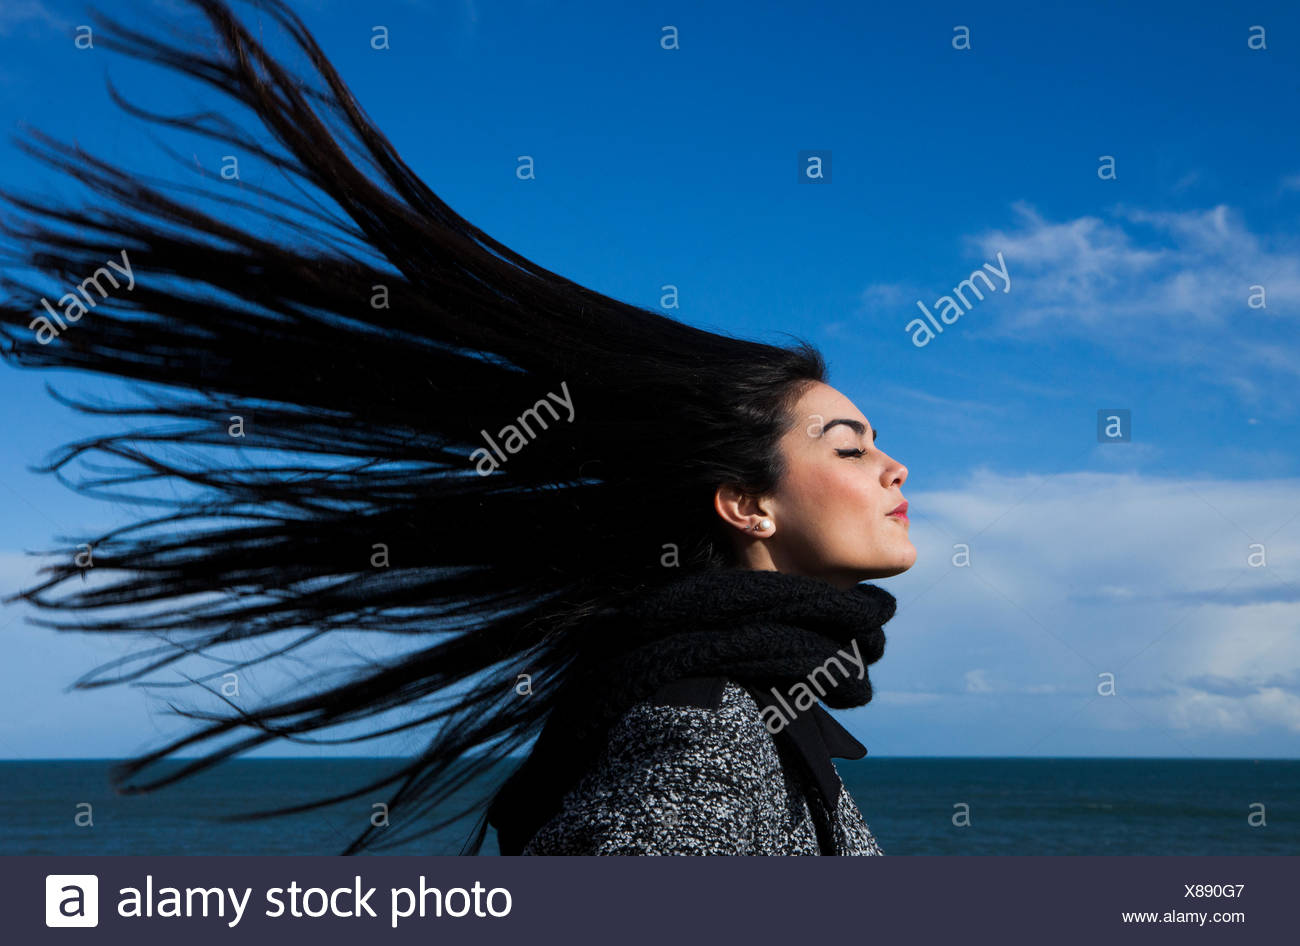 Young woman with hair blowing in the wind Stock Photo